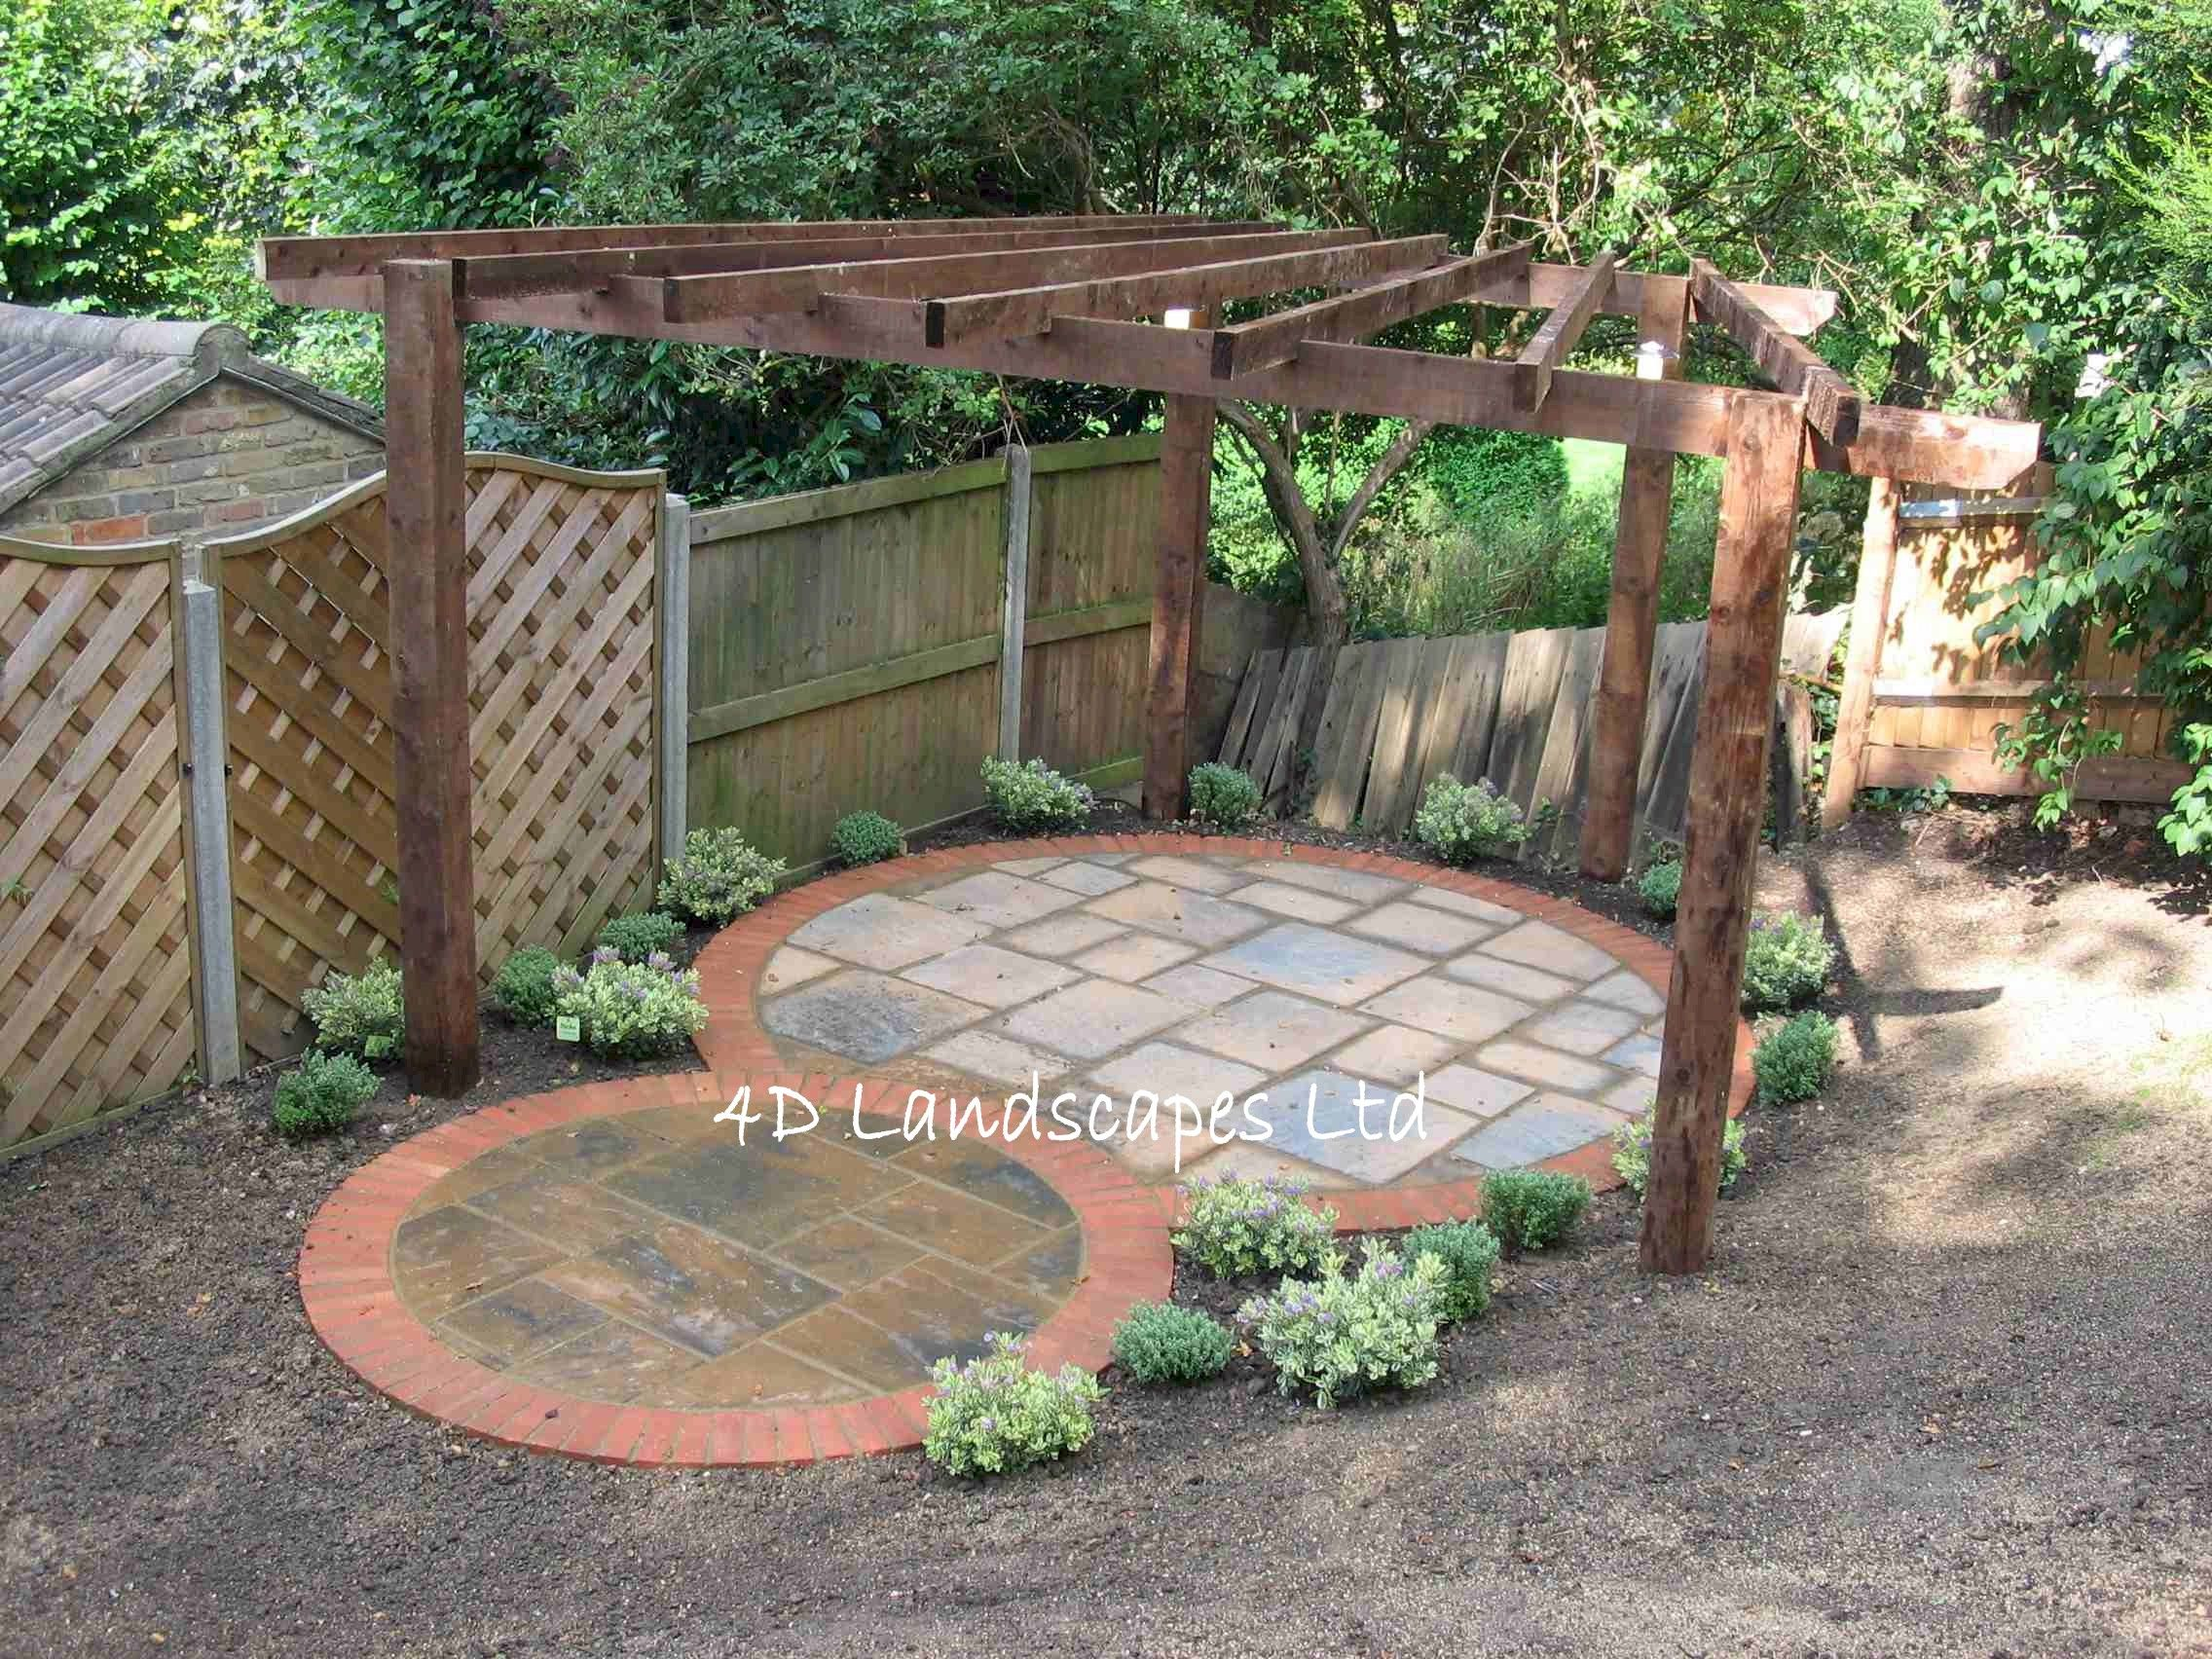 Gorgeous circular patio with pergola from 4d landscape ltd for Circular garden designs